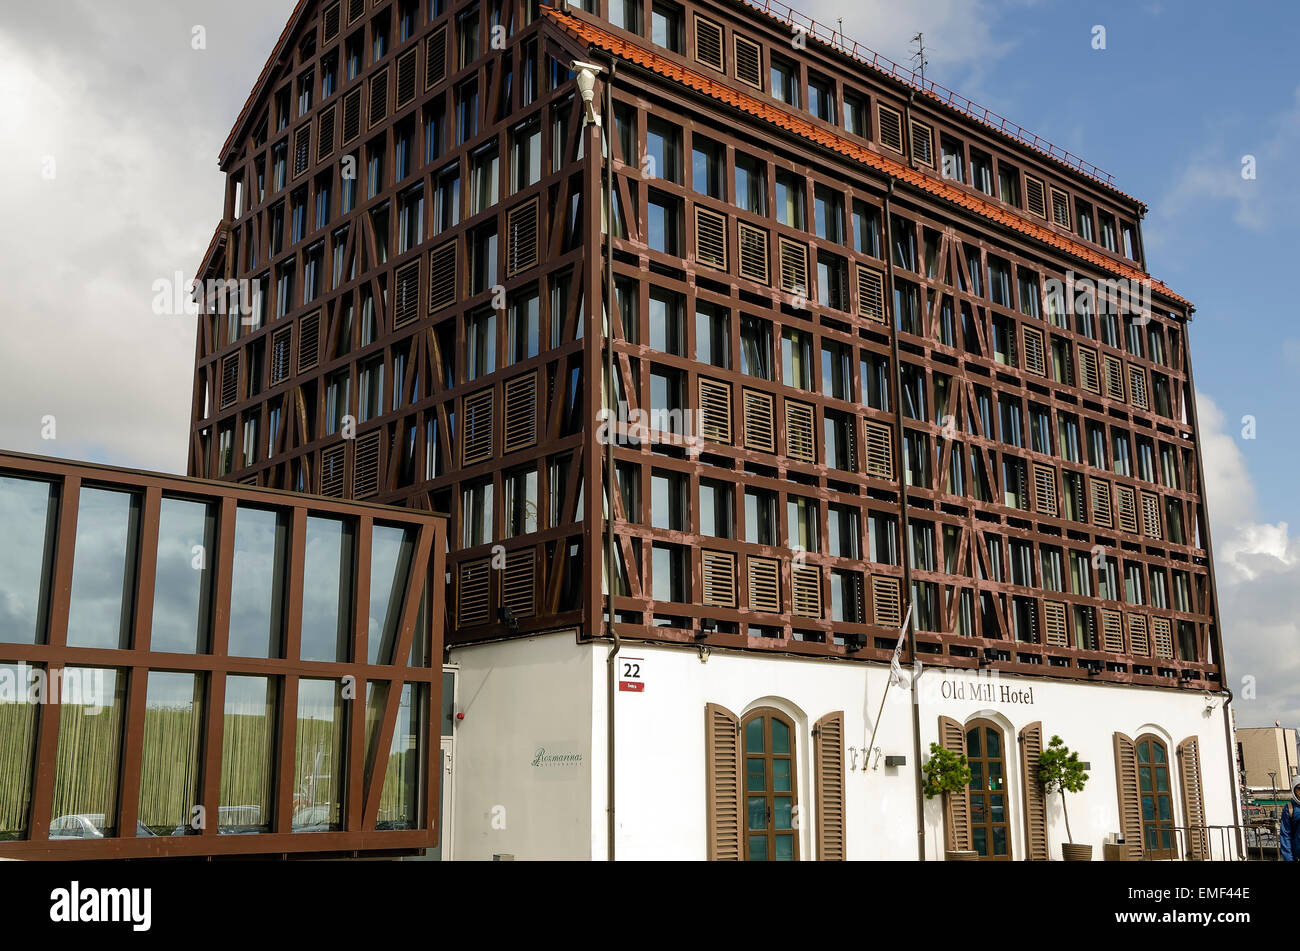 Klaipeda Lithuania Old Mill Hotel fachwerk half-timbered traditional architecture - Stock Image